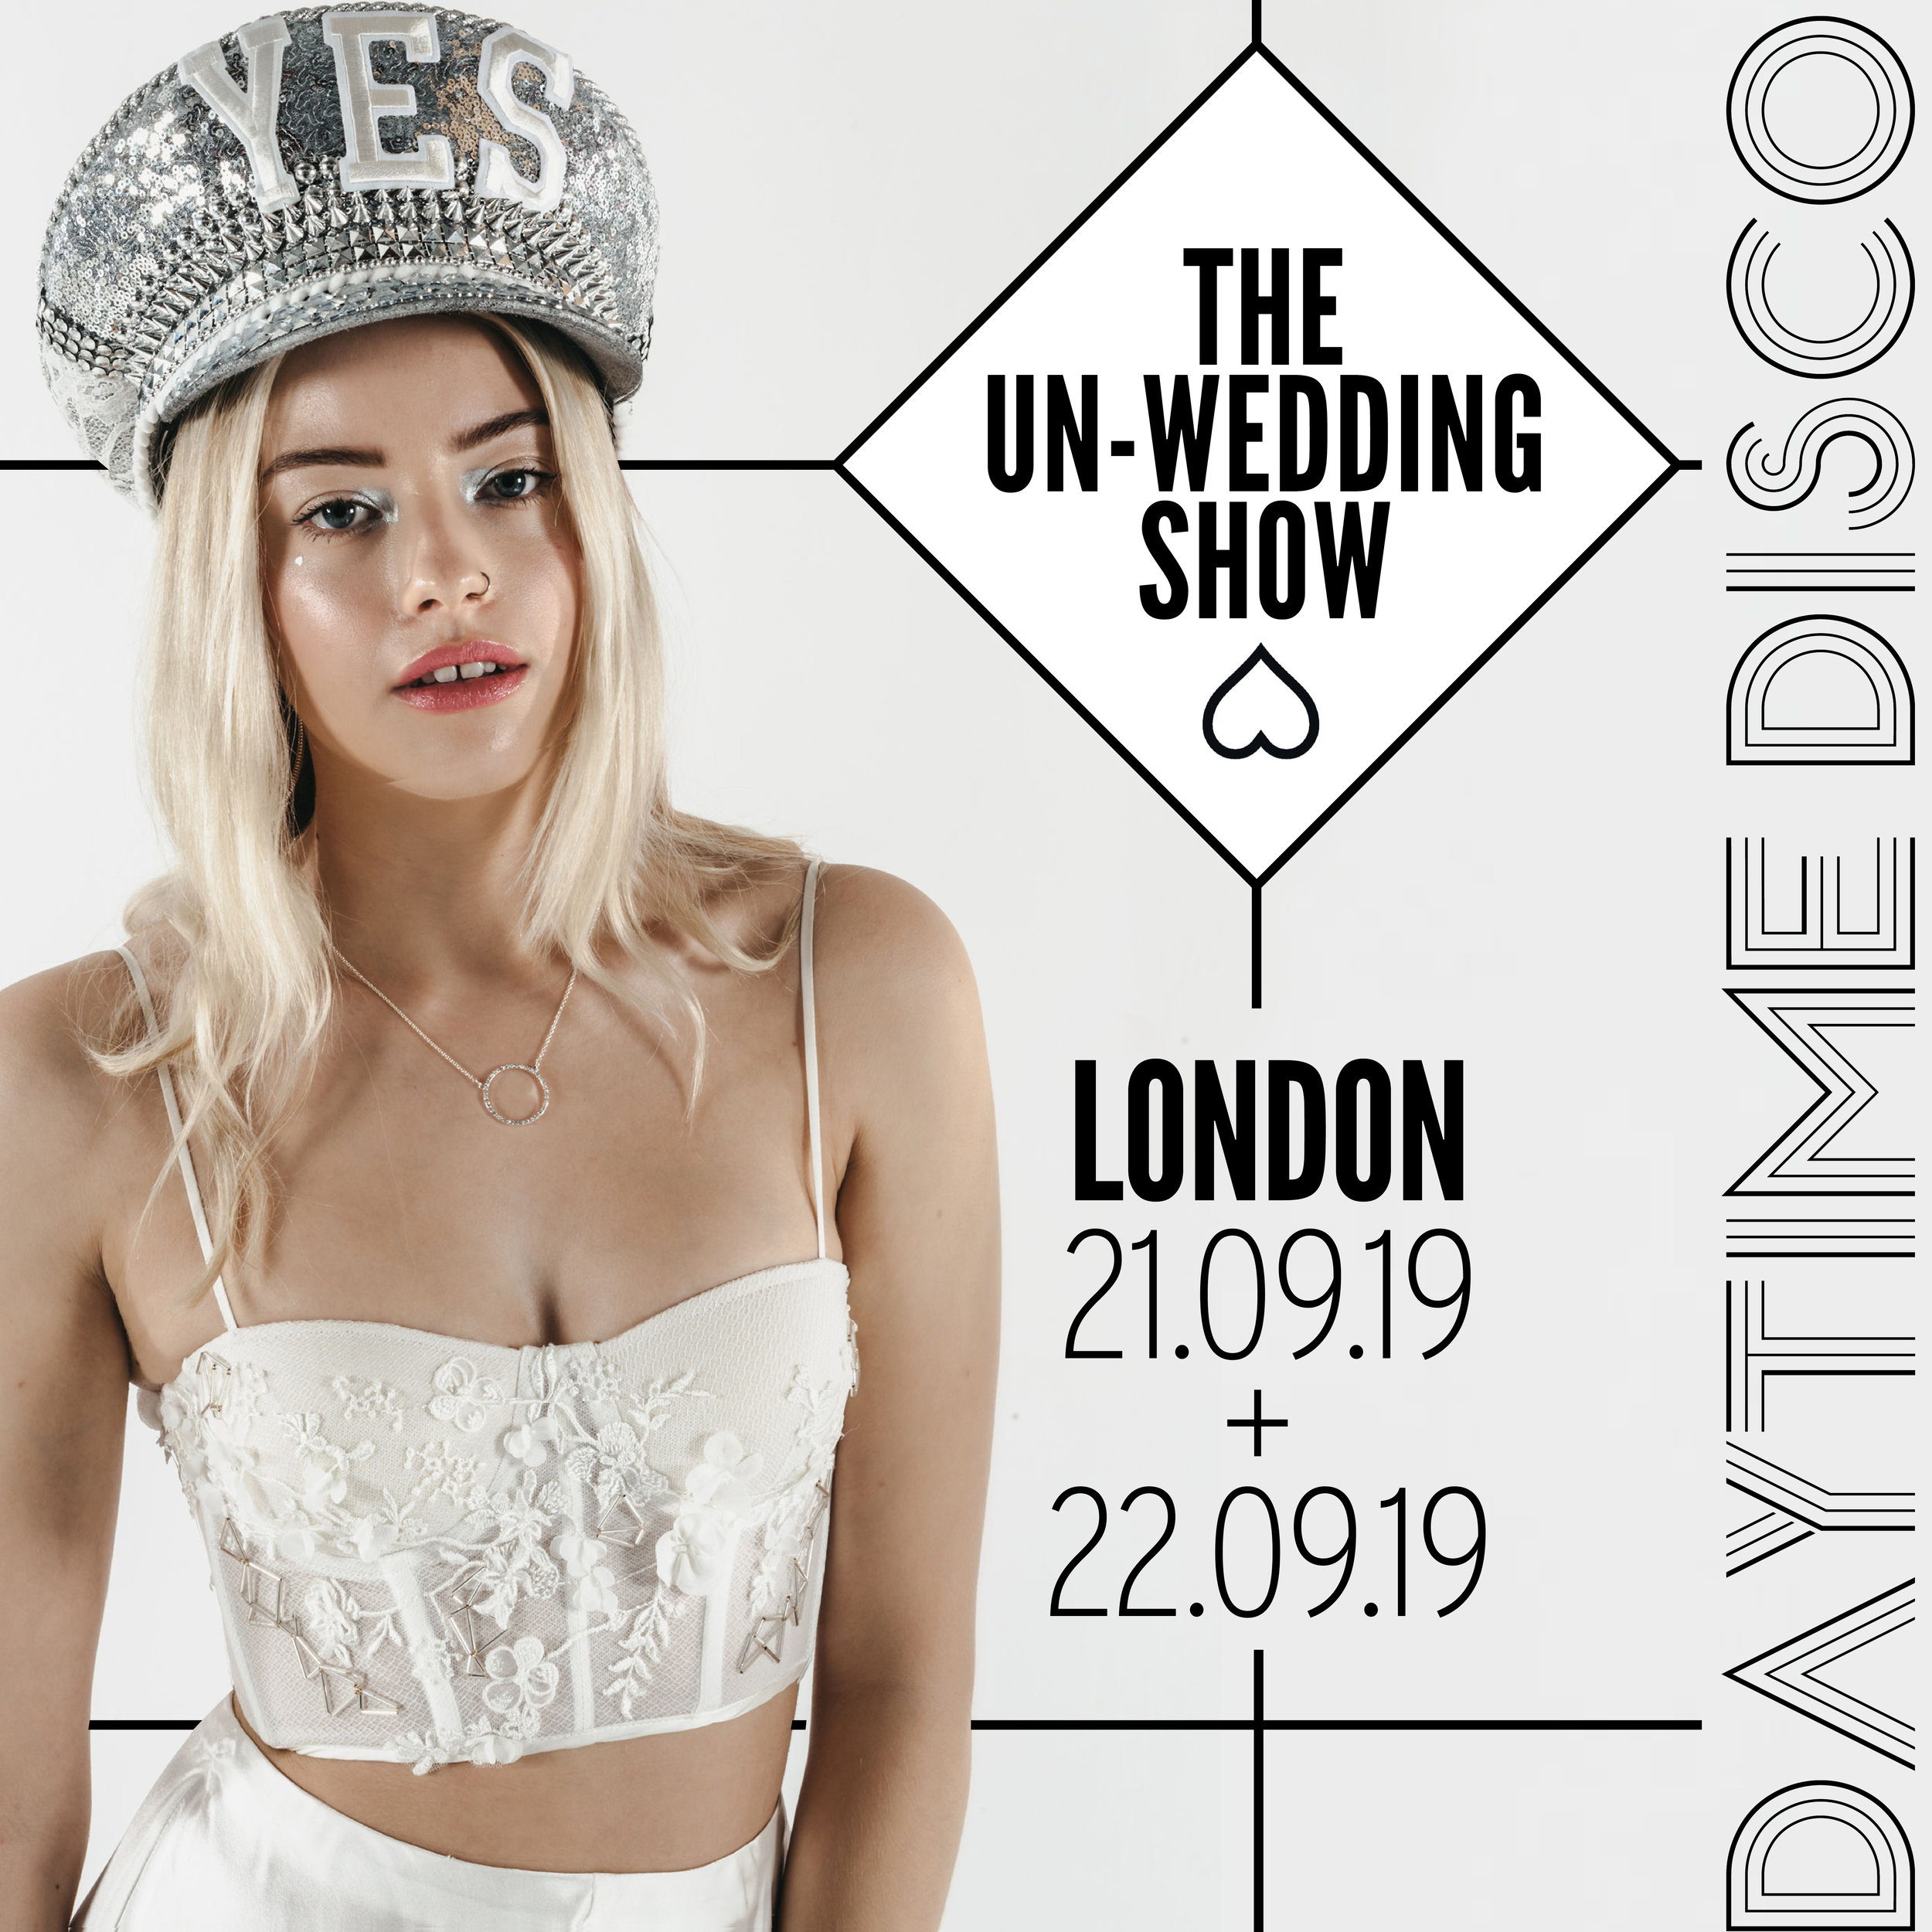 The Un-Wedding Show London.jpg